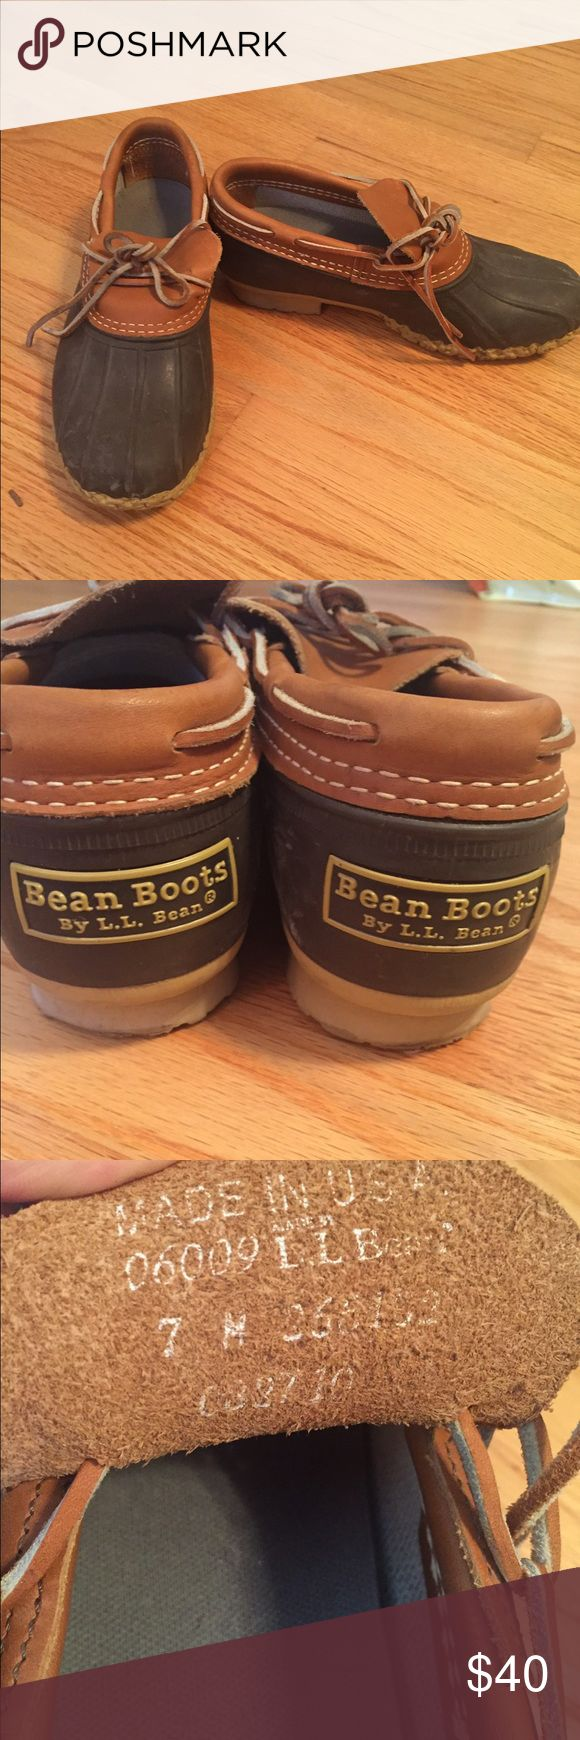 LL Bean Short Boots Gently worn LL Bean short boots. Worn only a handful of times and great condition! Size 7 (see inside tongue) but run a bit big. Ankle length with classic LL Bean logo on back L.L. Bean Shoes Ankle Boots & Booties